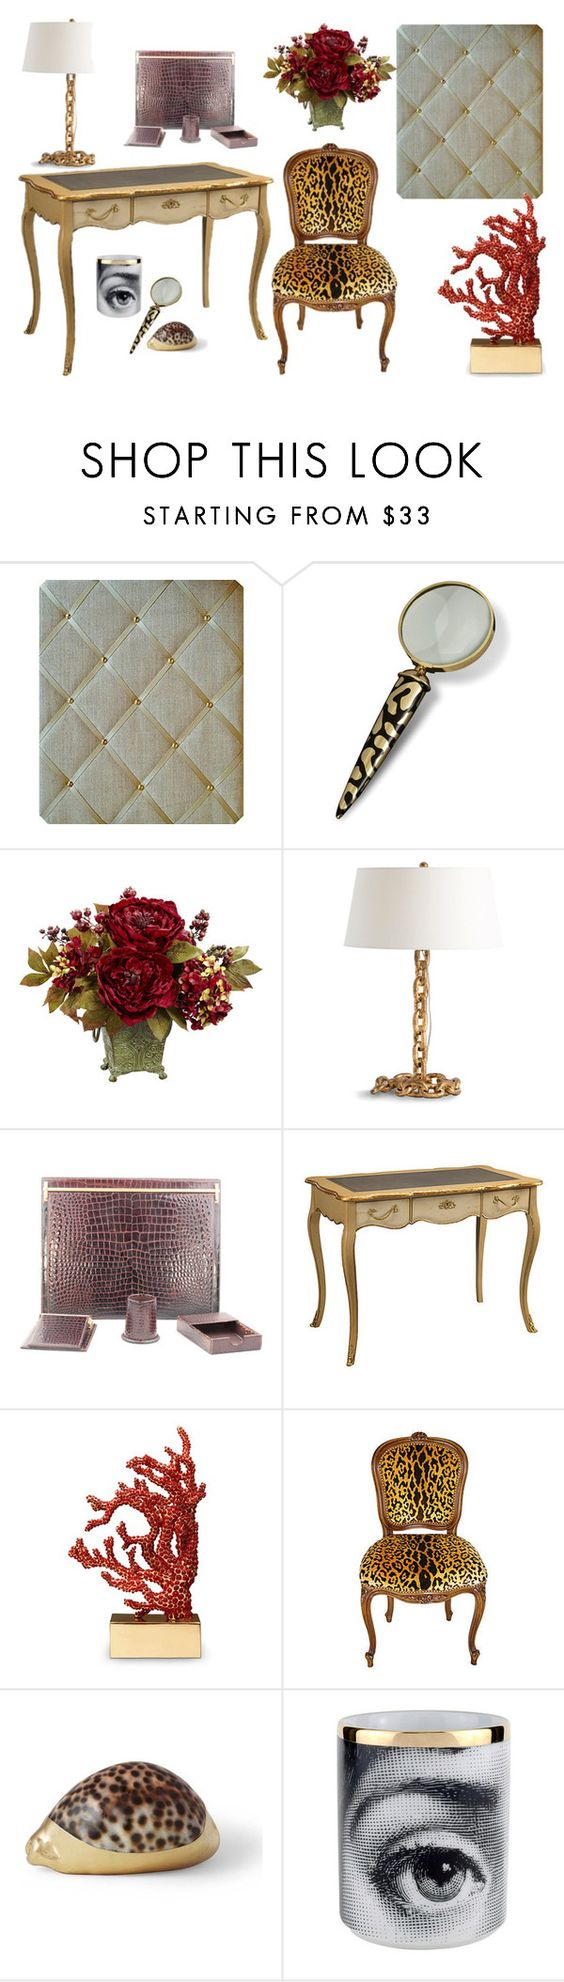 Elegant writing desk, LeopardPrint walnut chair, Cartier snakeskin desk set, oppulent office